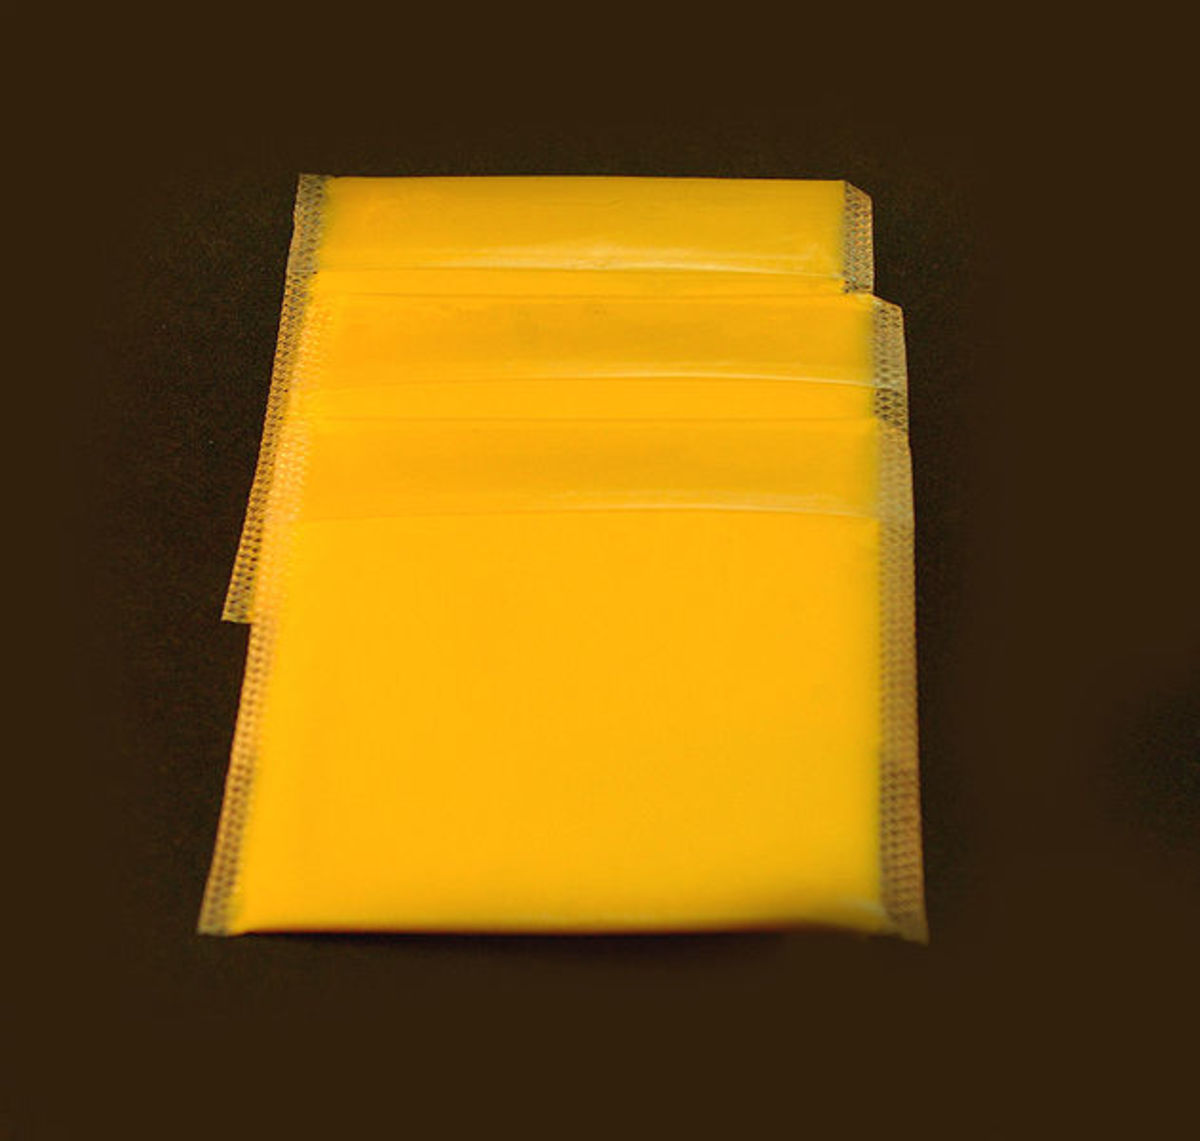 American Cheese packed